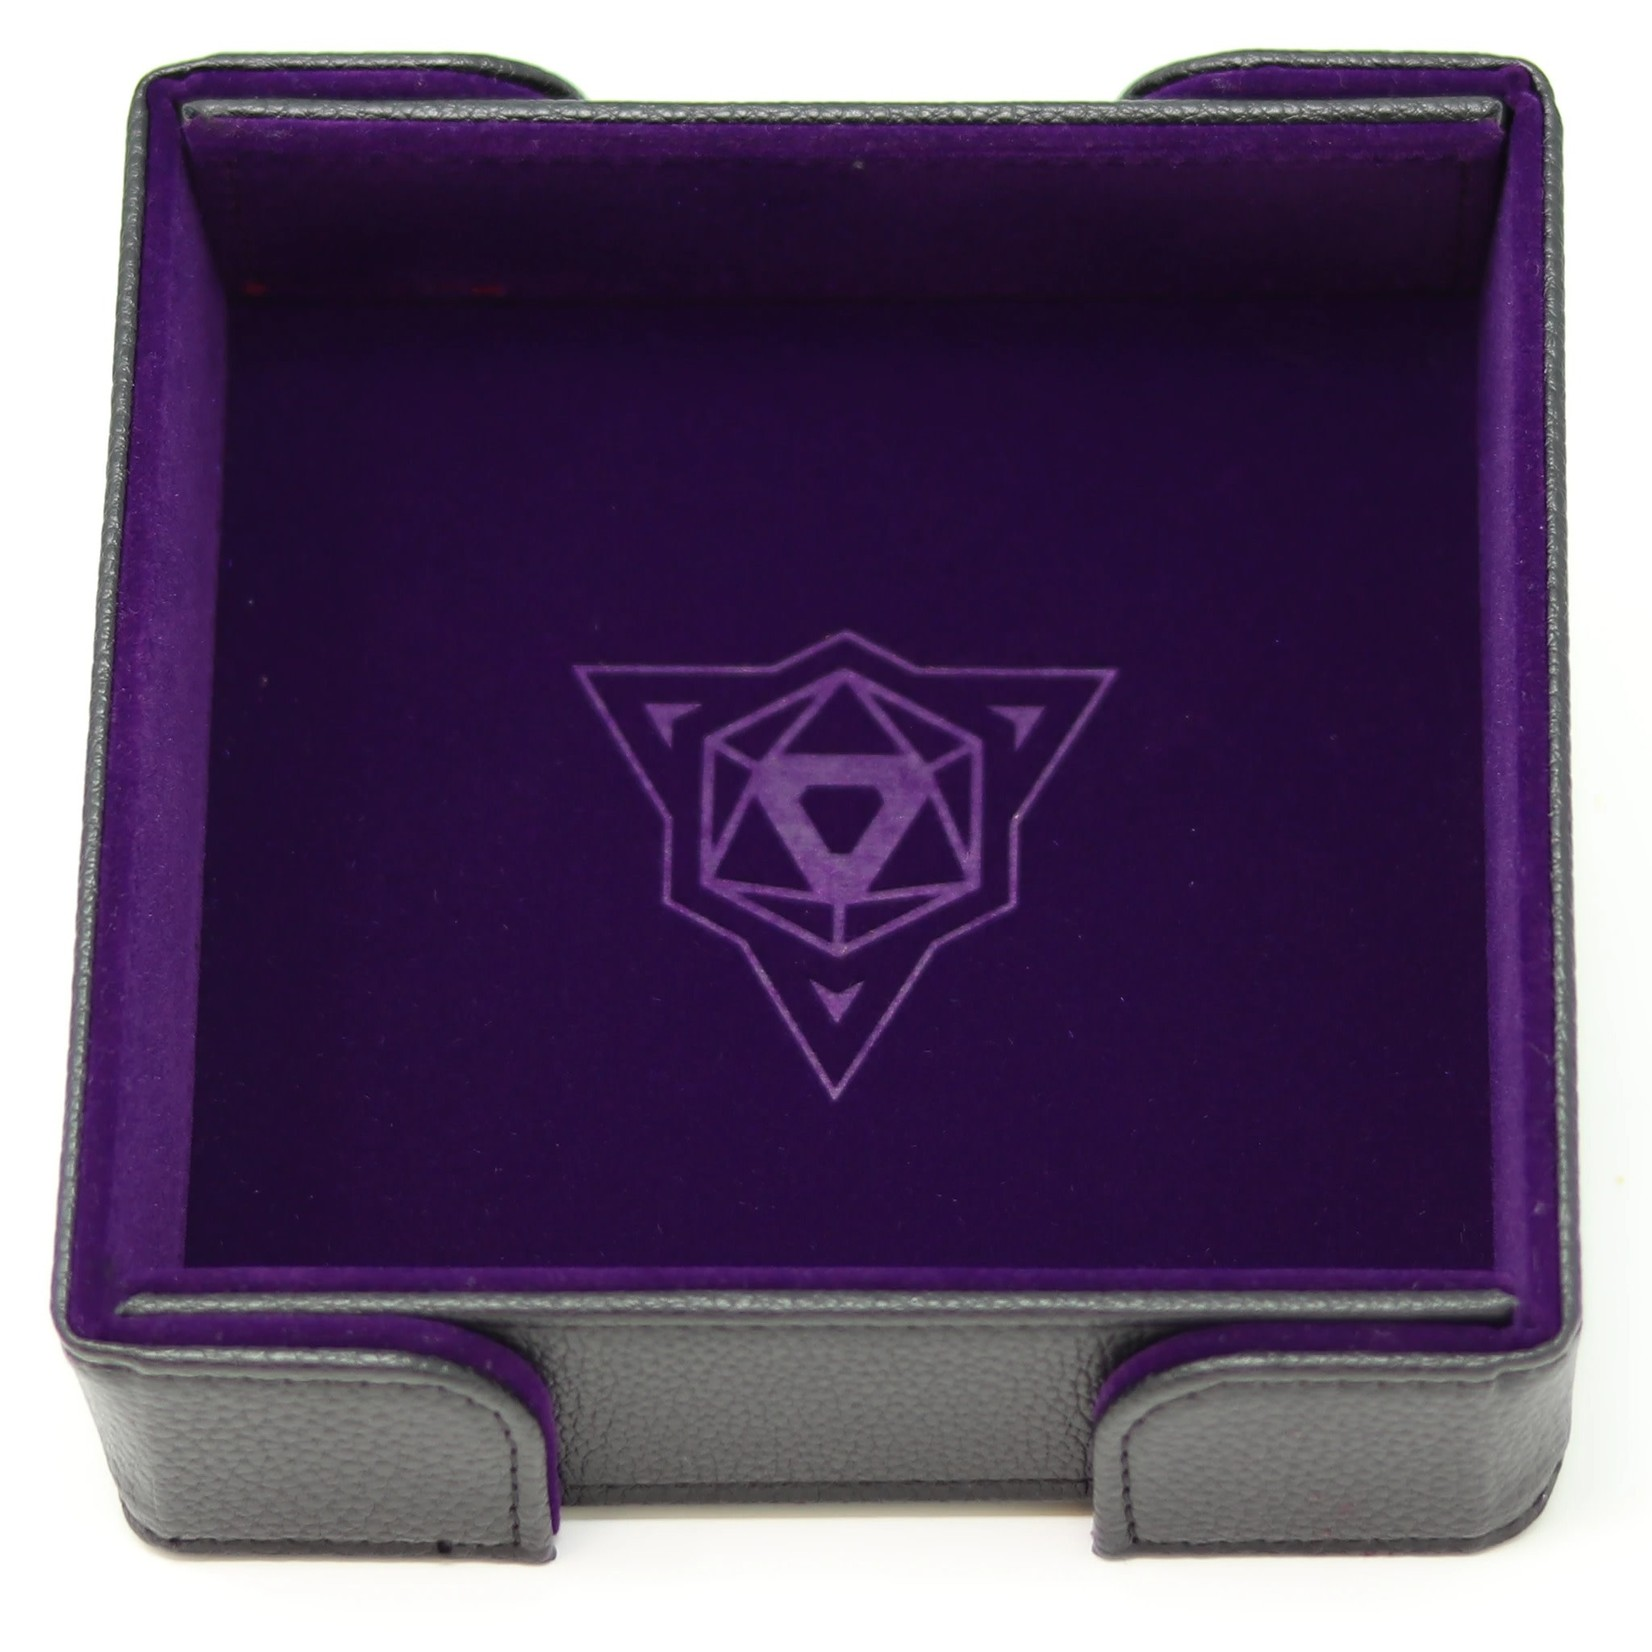 Die Hard Dice Dice Tray Magnetic Square Purple